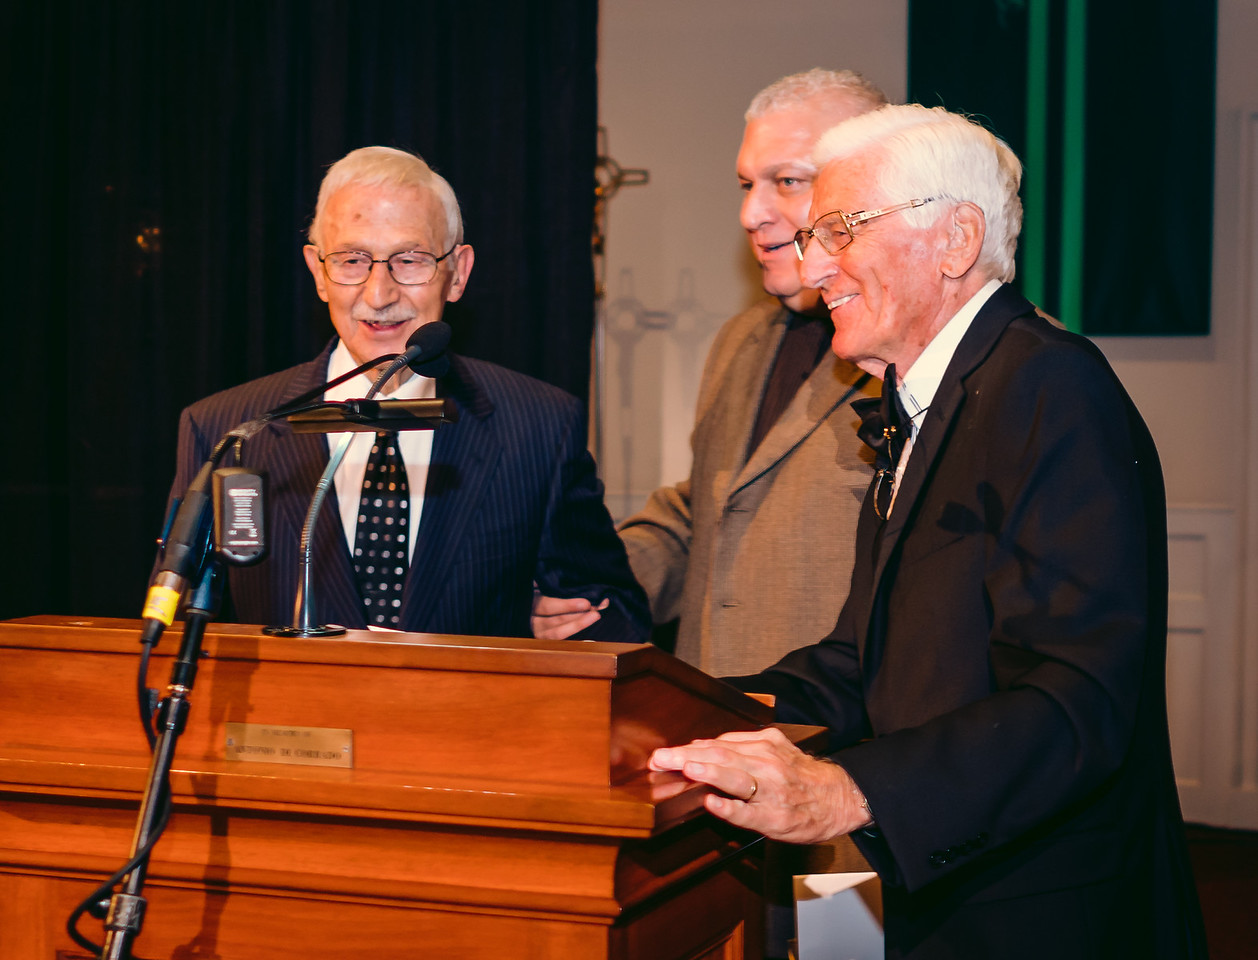 Albert Natale (left) is honored by St. Joseph Society President Peter Bagarella and Host Angelo Polcari